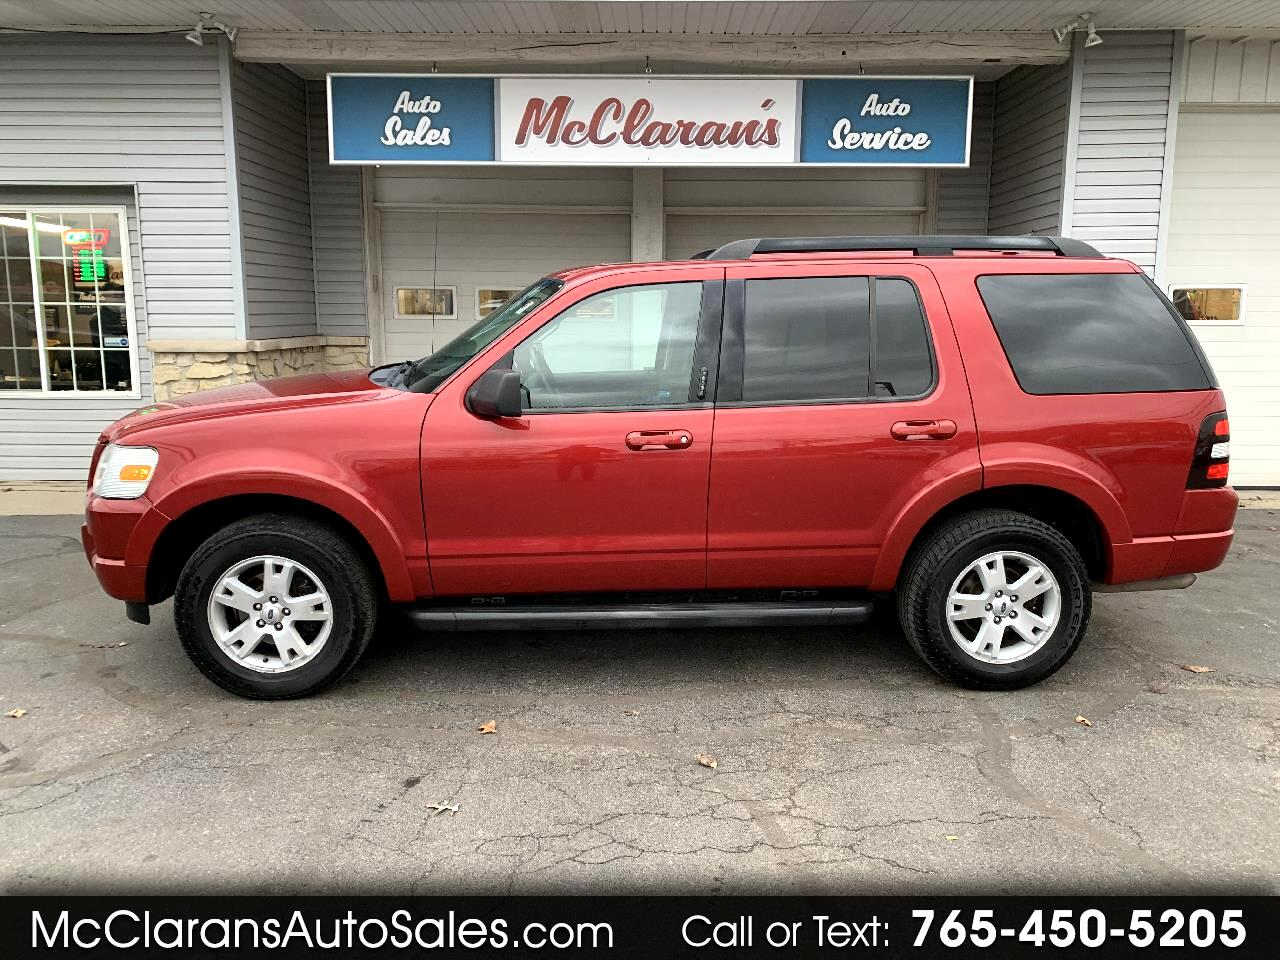 Ford Explorer XLT 4.0L 4WD 2010